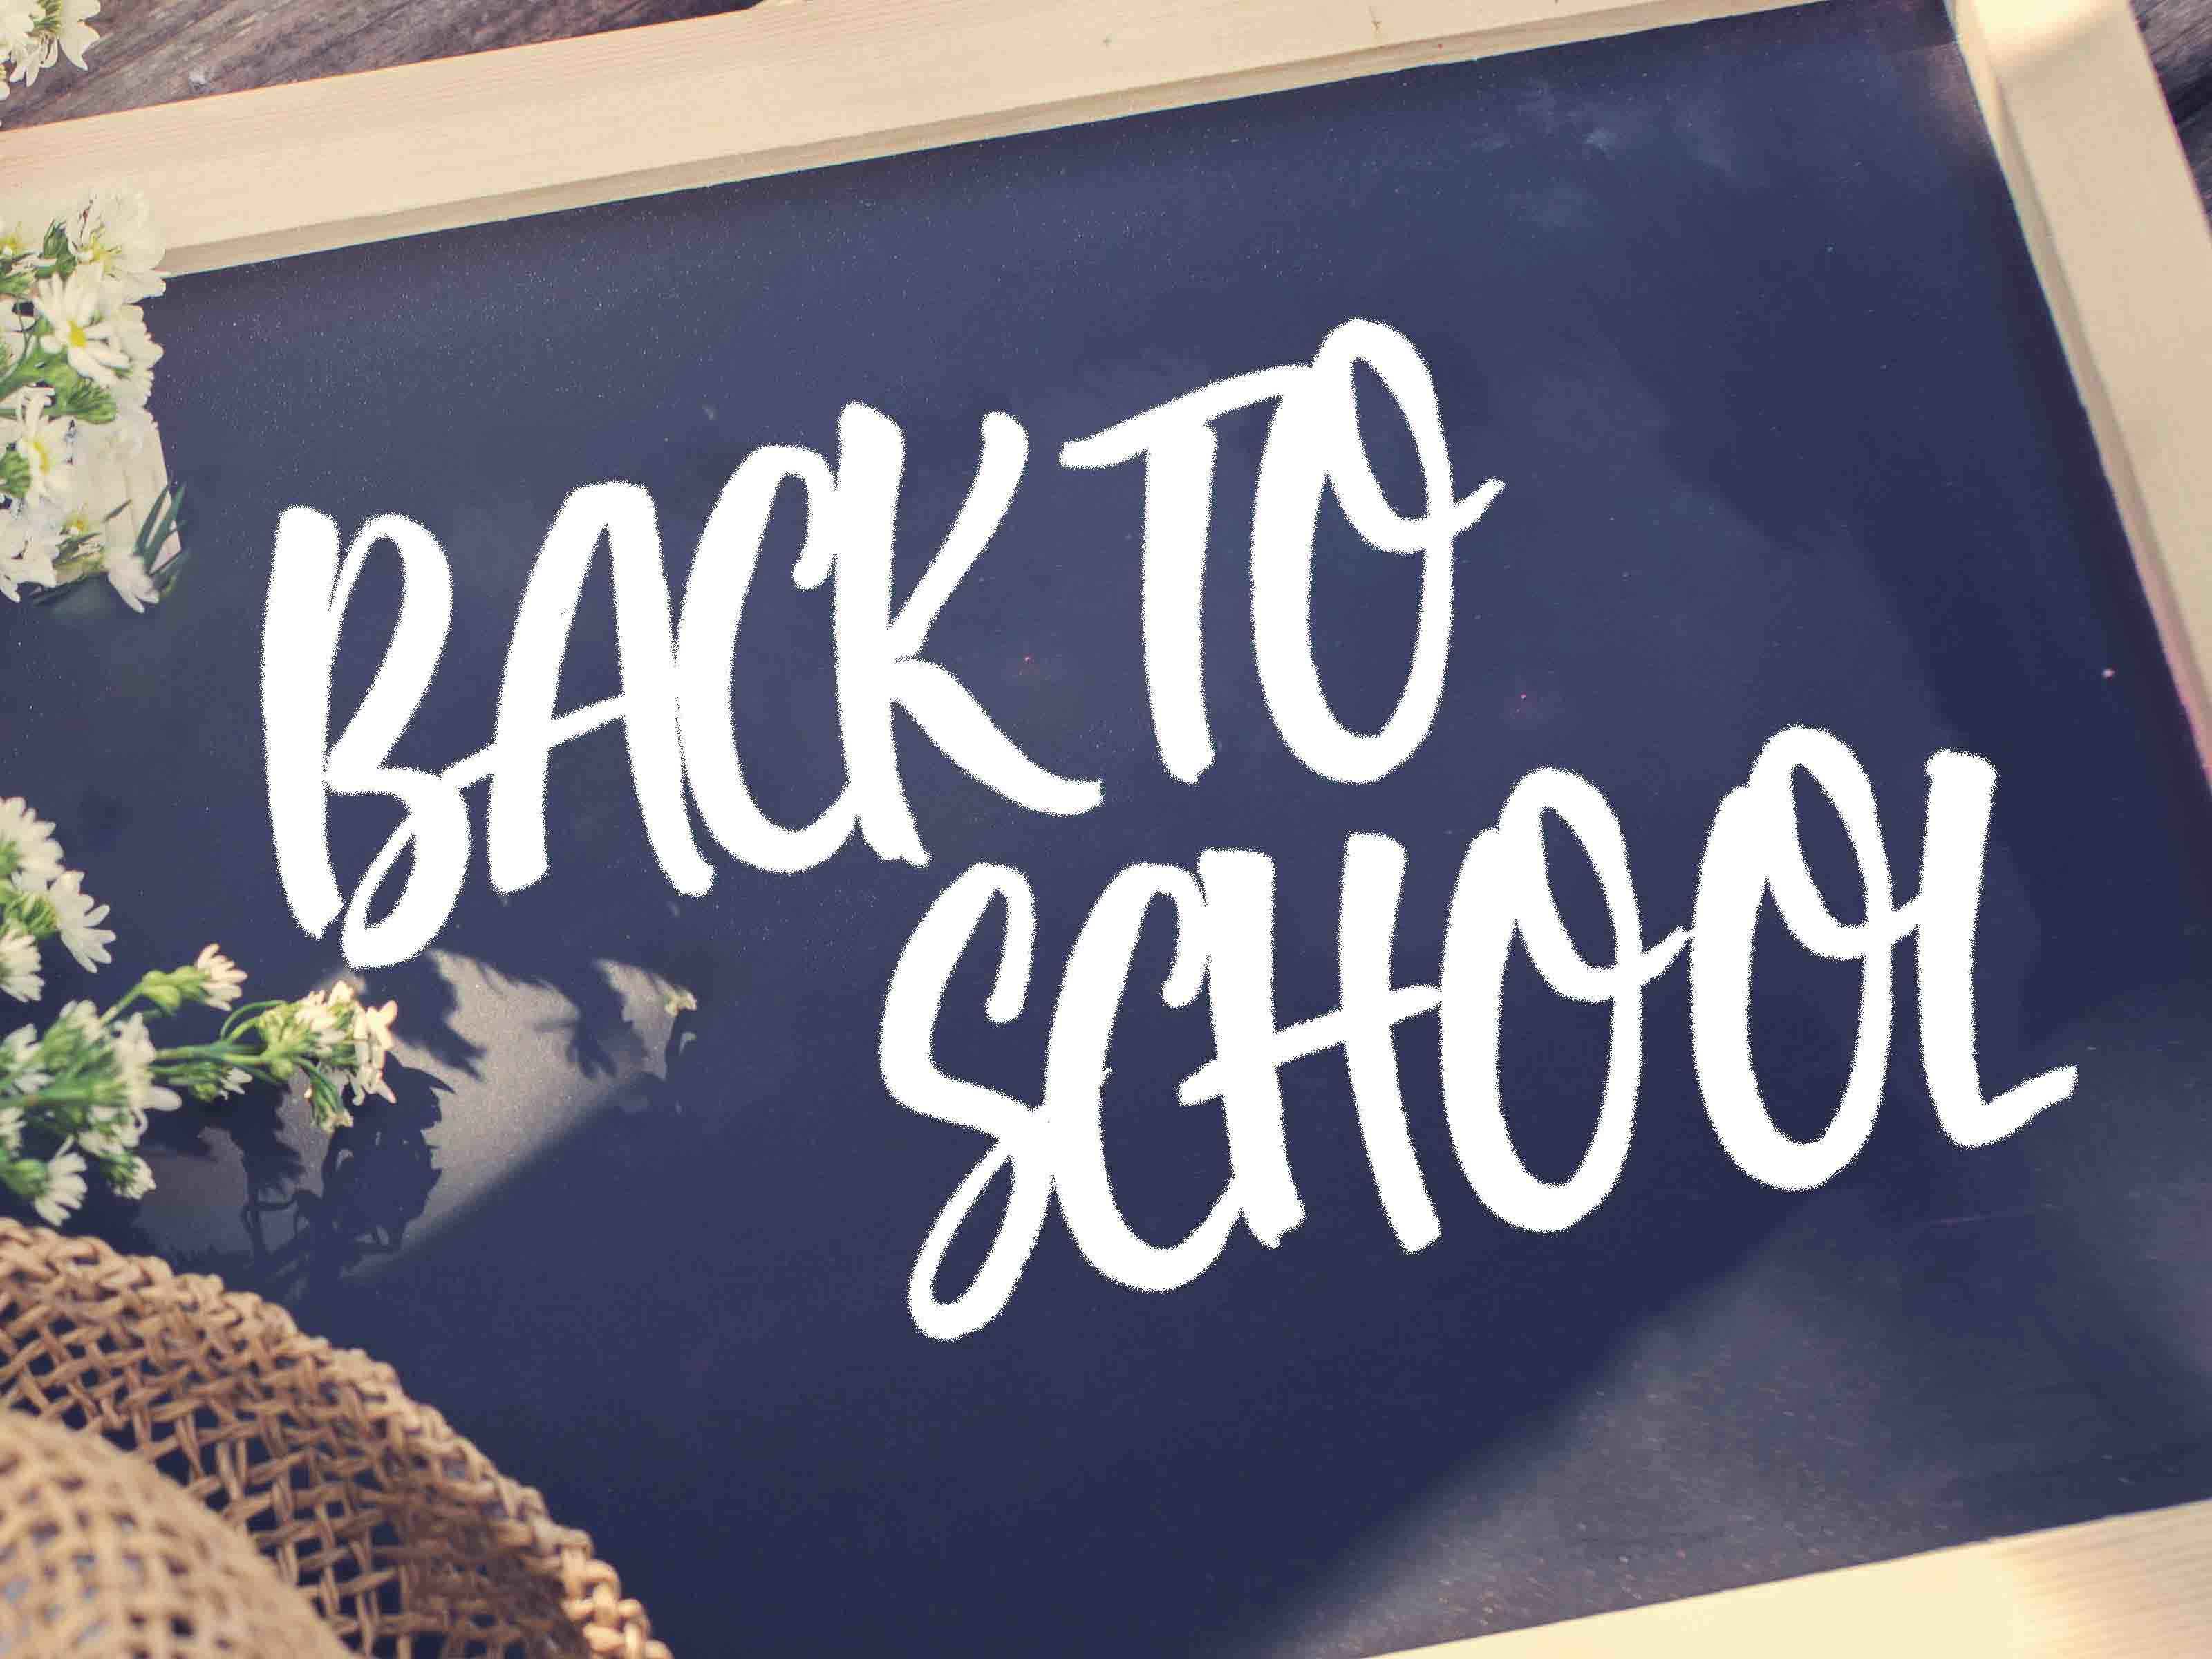 Hen Party Themes - Back to School